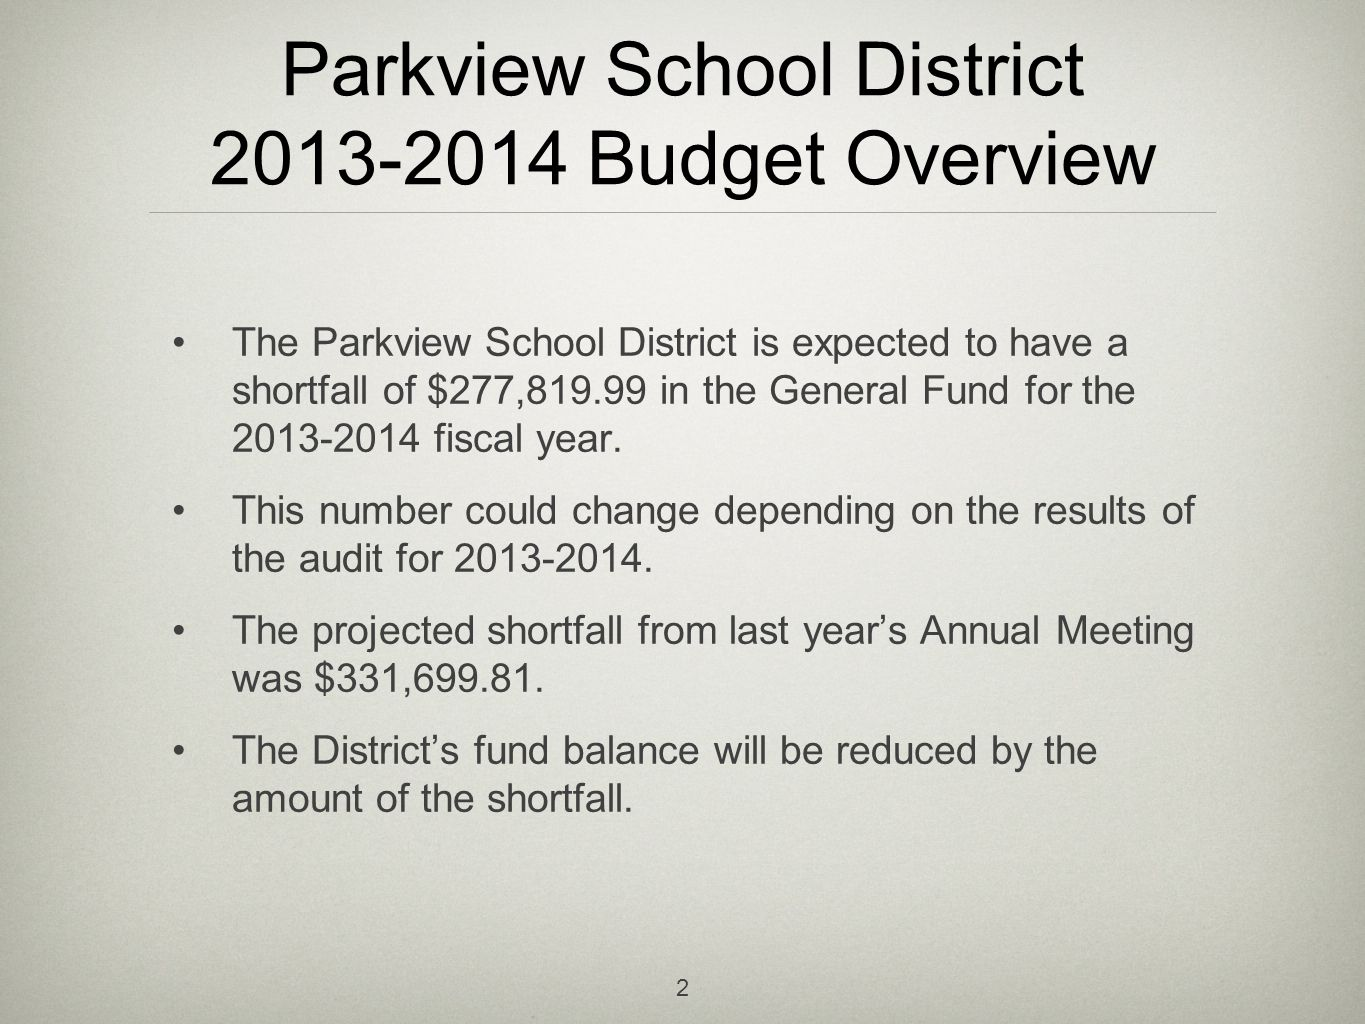 Parkview School District 2014-2015 Budget Overview The Parkview School District is expected to have a budget deficit of $186,730.30 for the 2014-2015 fiscal year.